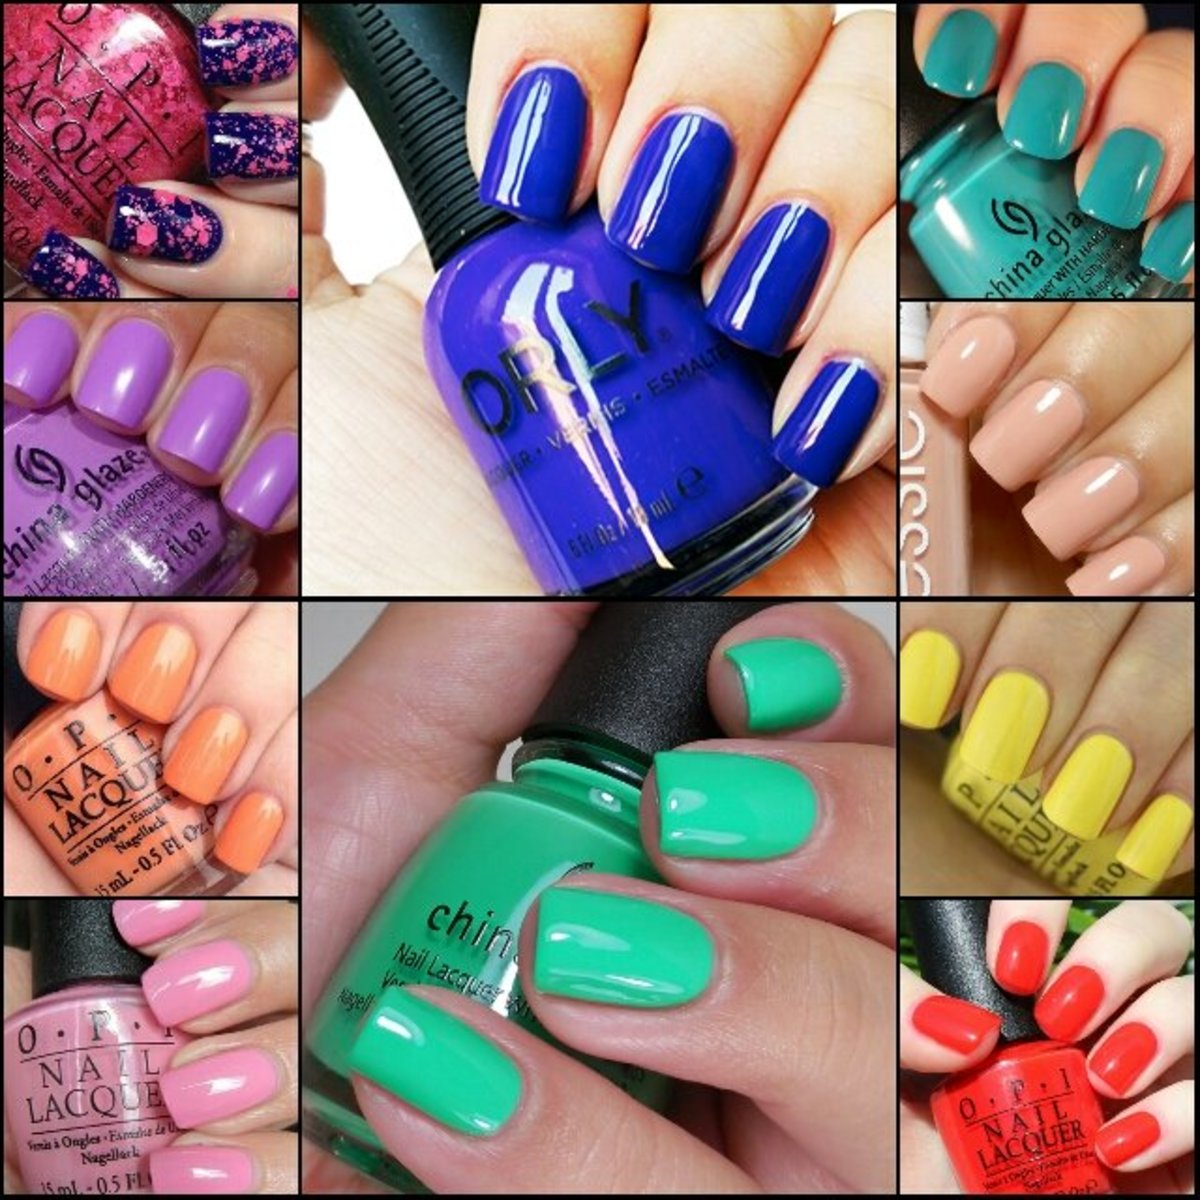 My Top 10 Favorite Nail Polish Colors